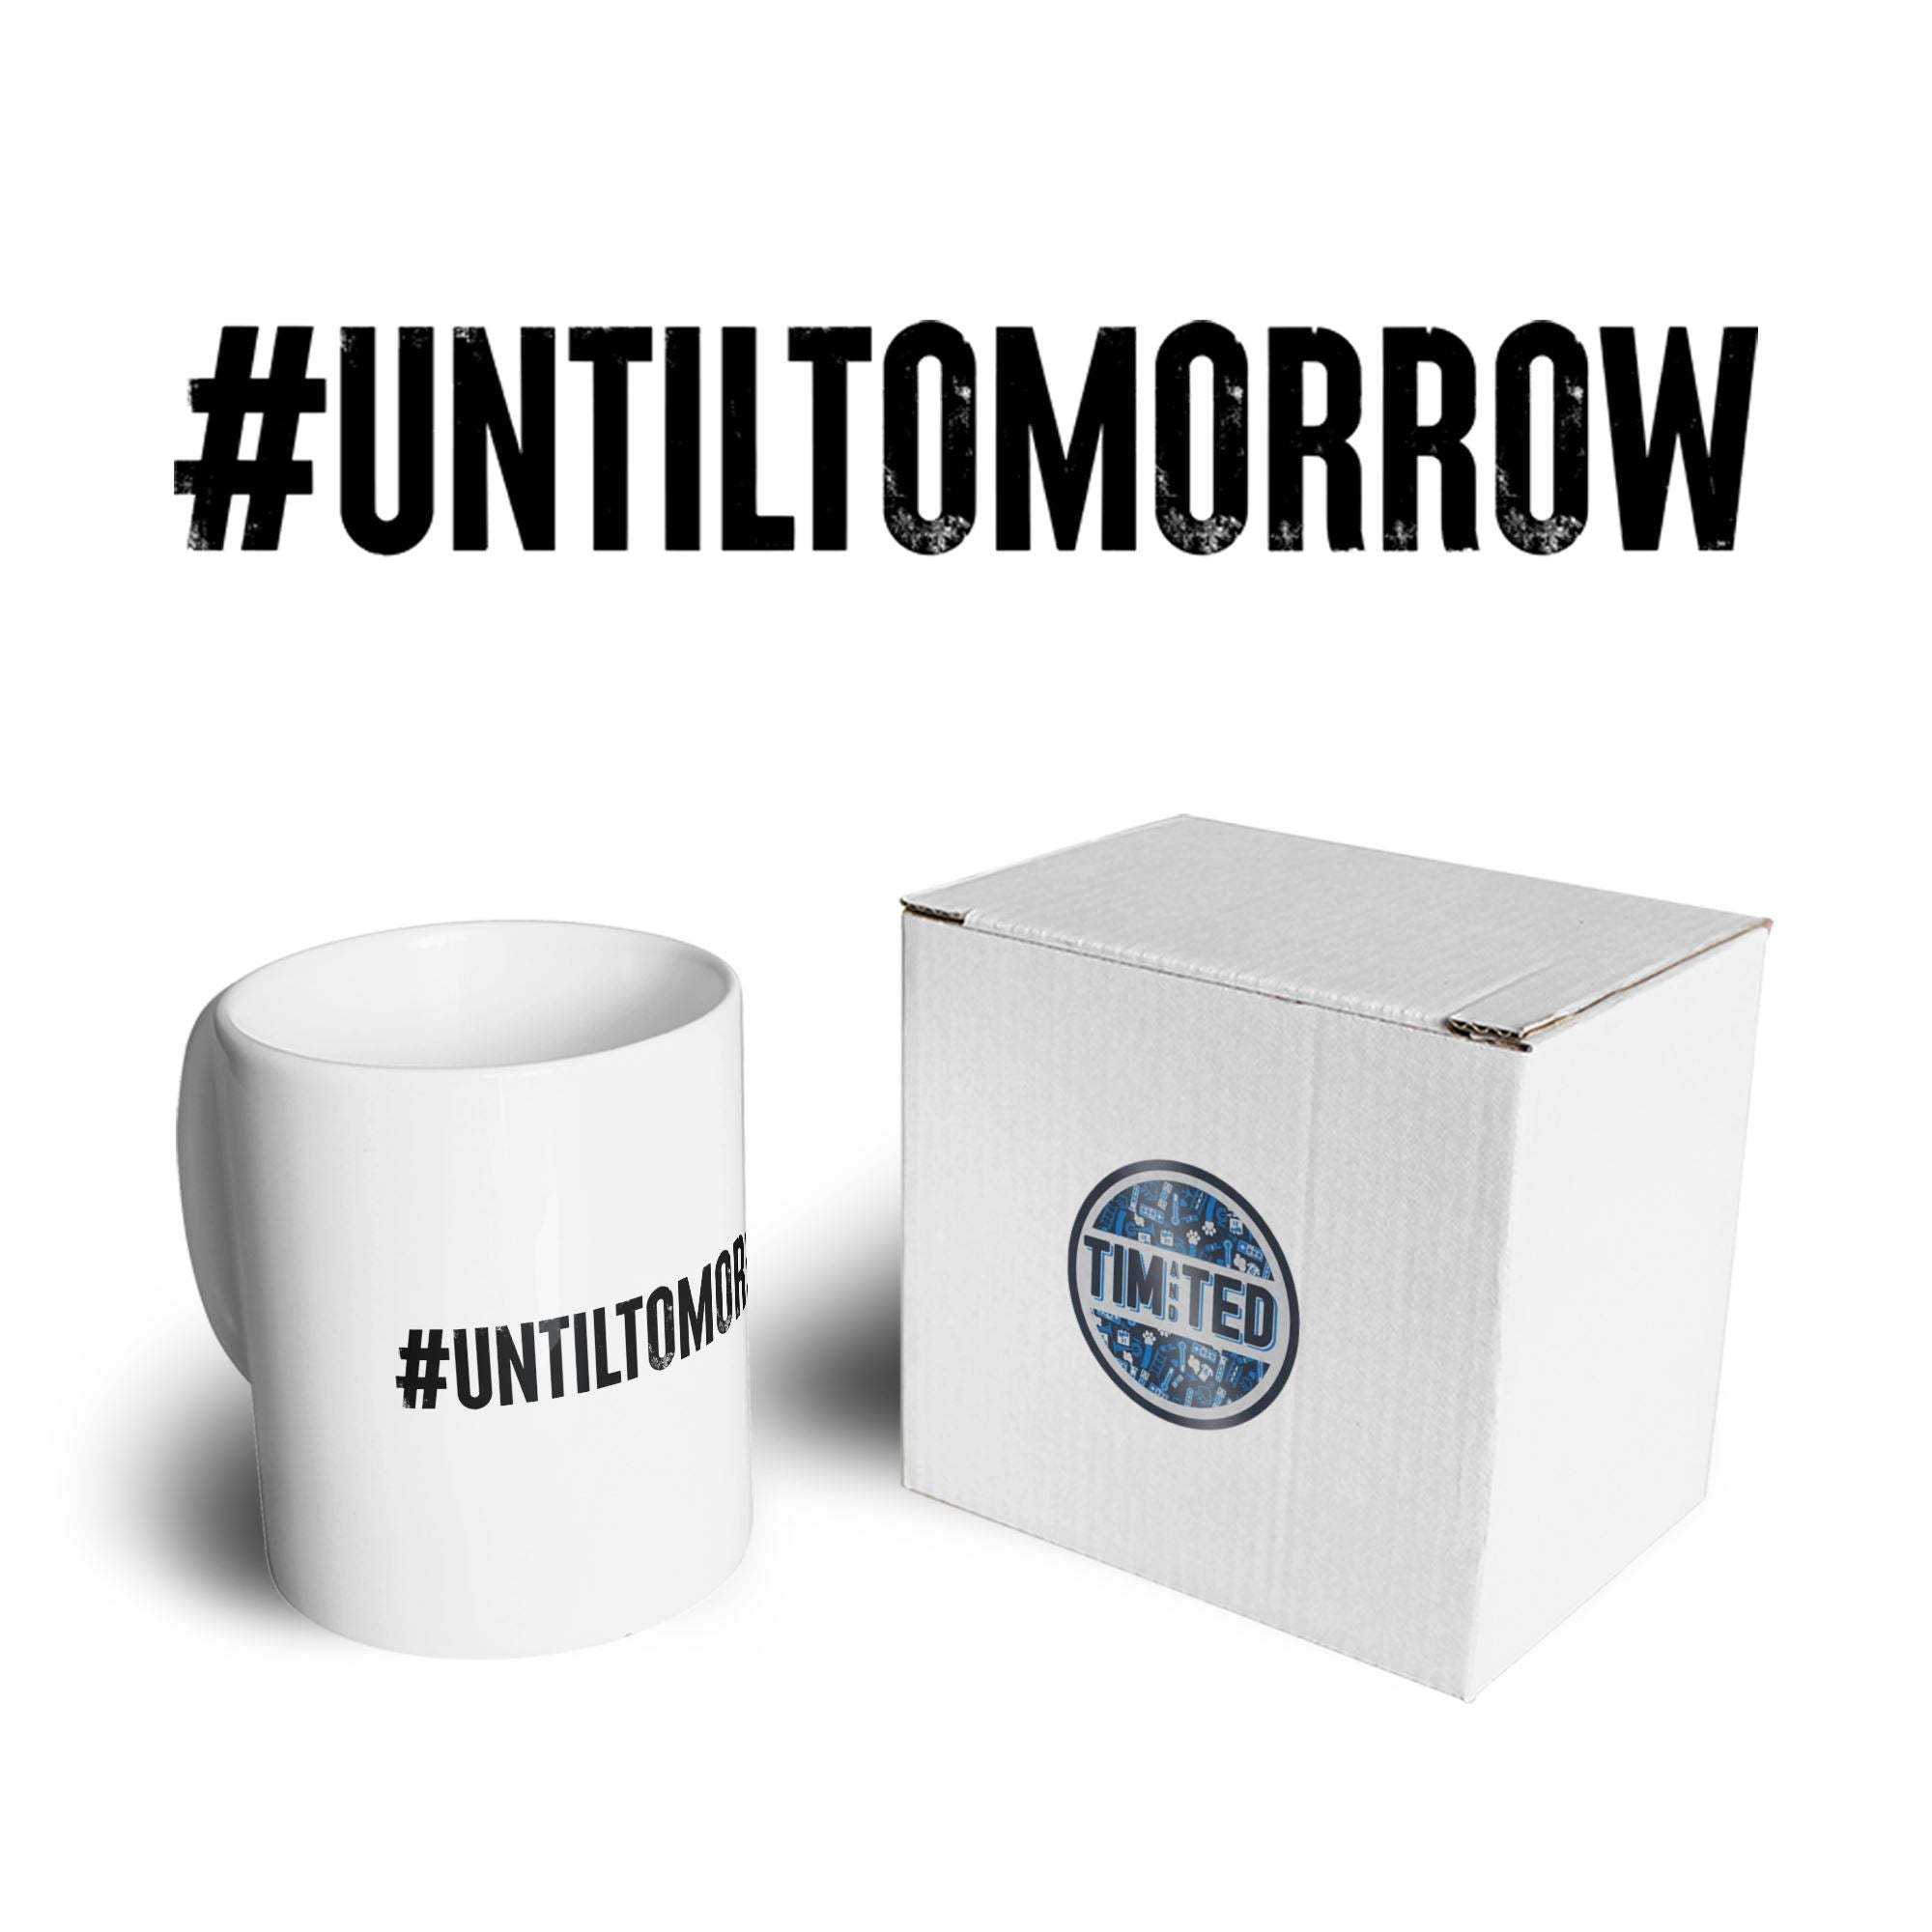 Until Tomorrow Mug #UntilTomorrow Internet Trend Coffee Tea Cup